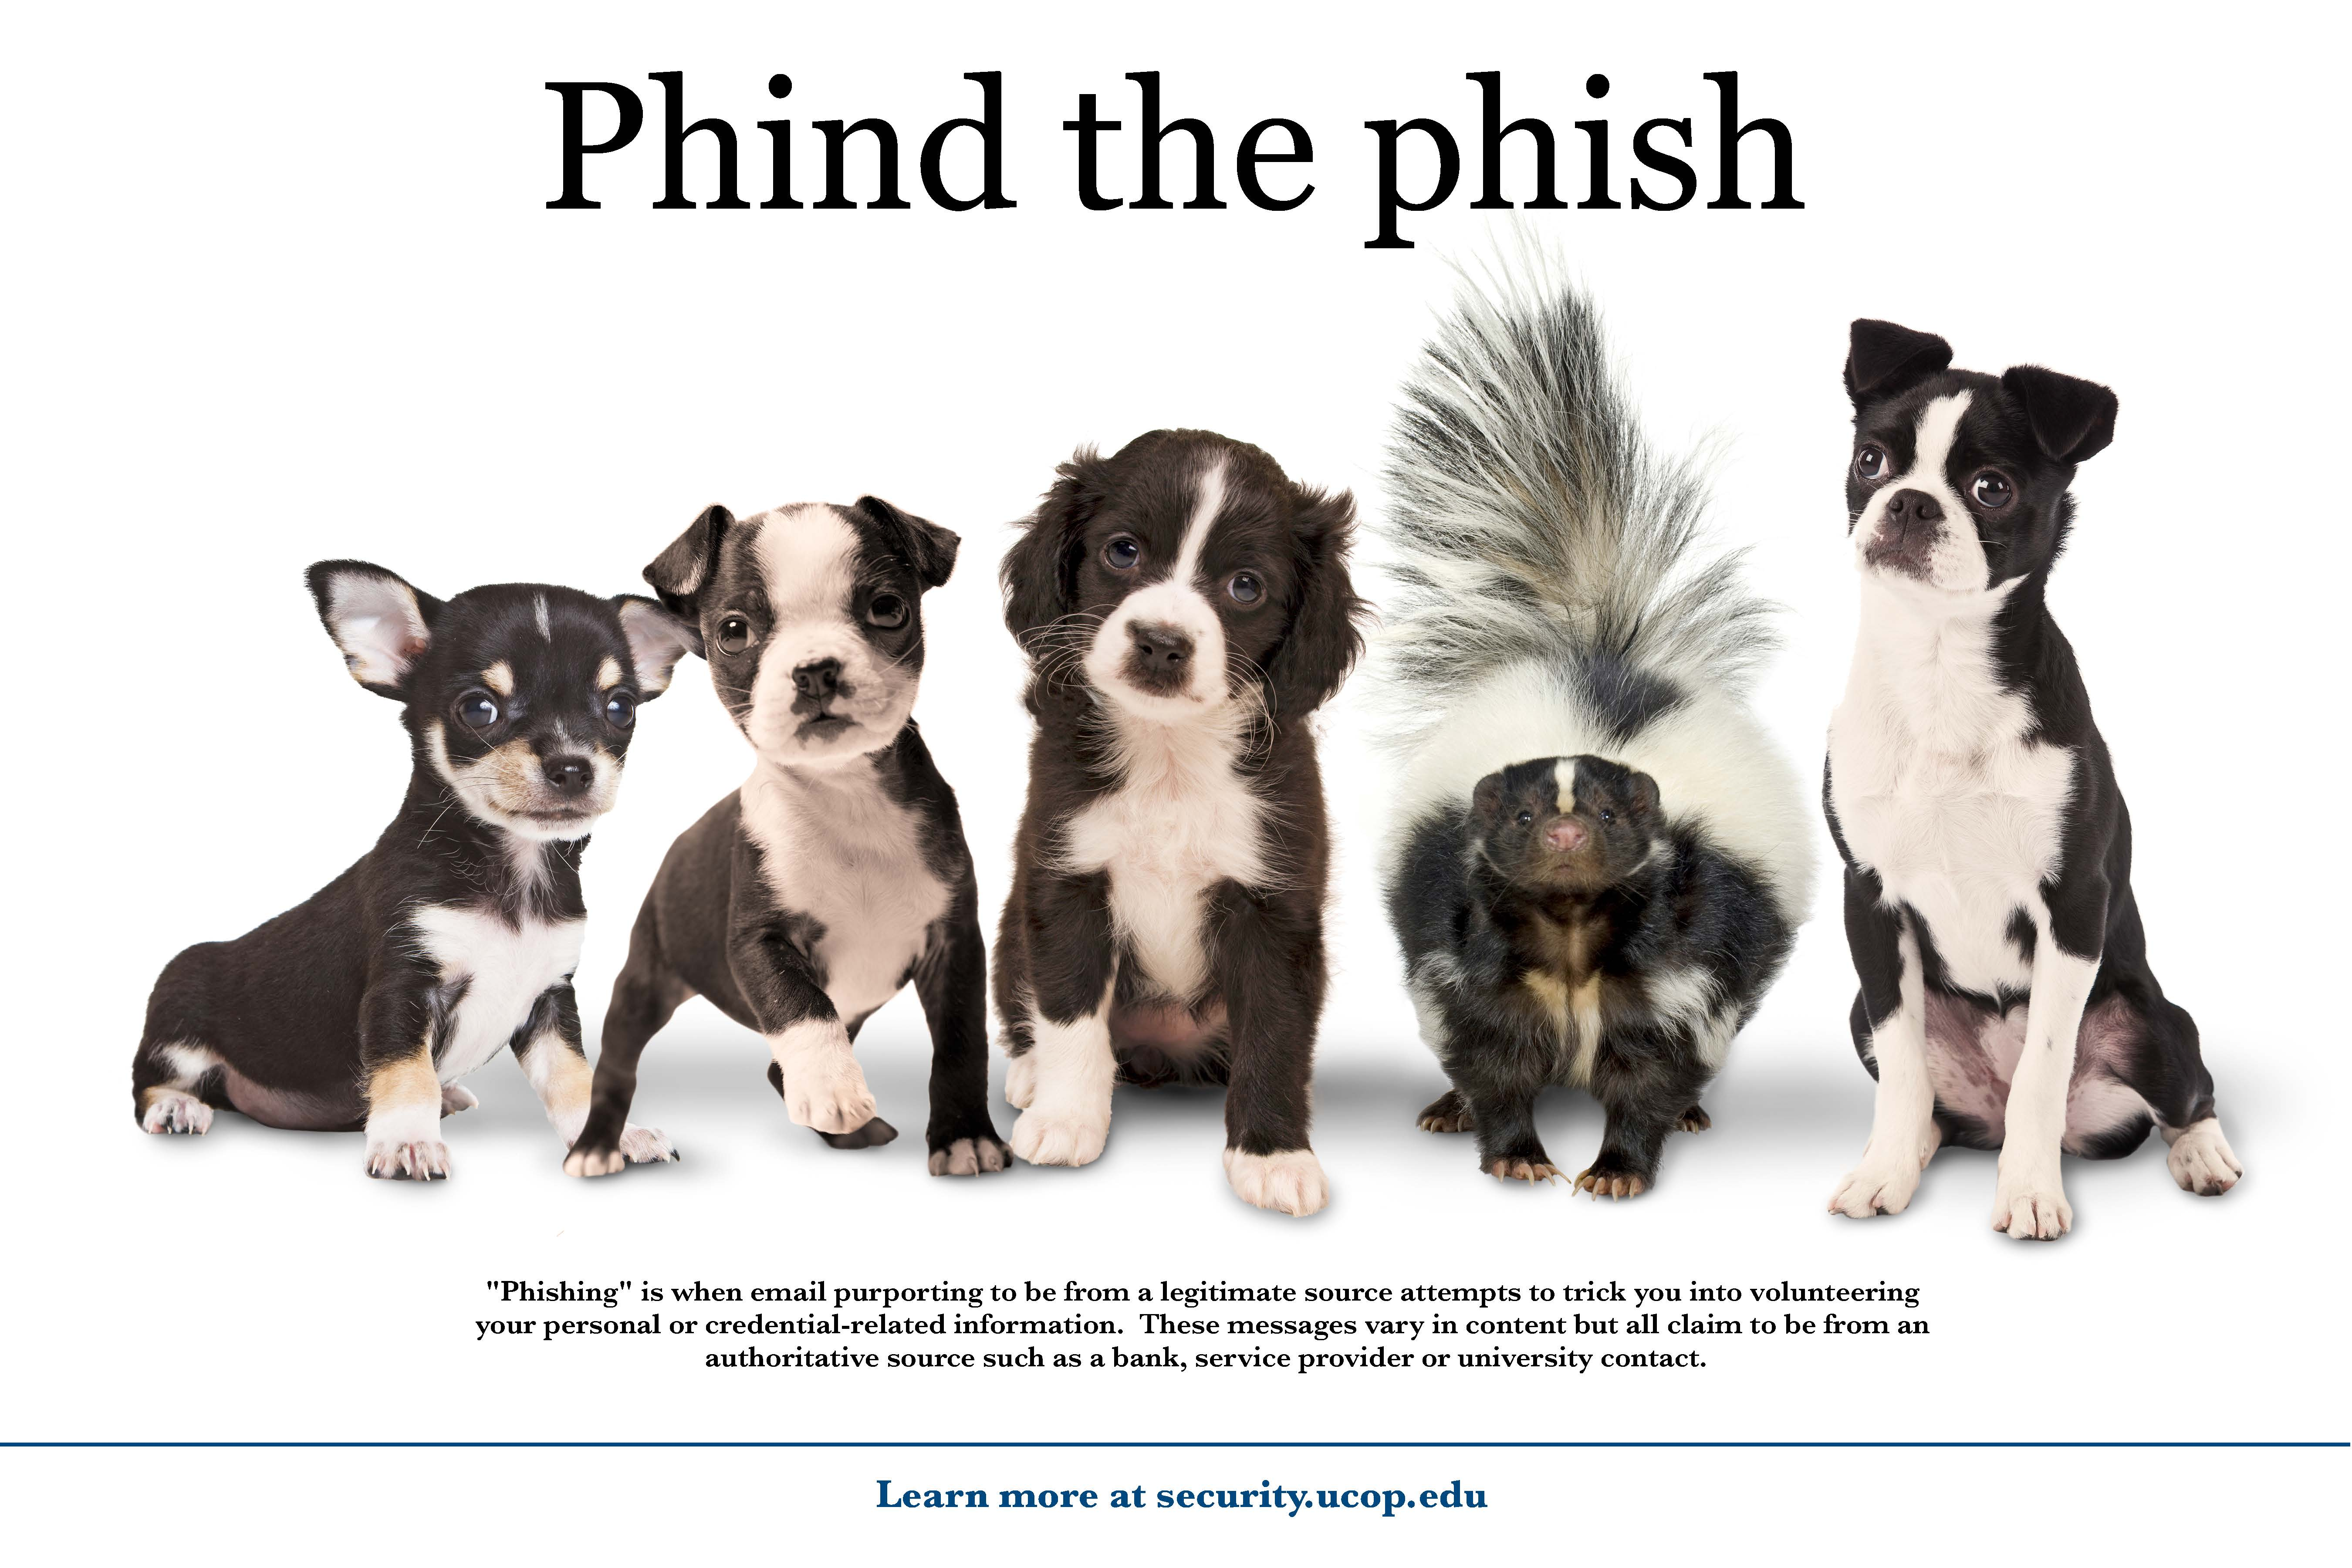 Flyer: Phind the phish. - Puppy Skunk